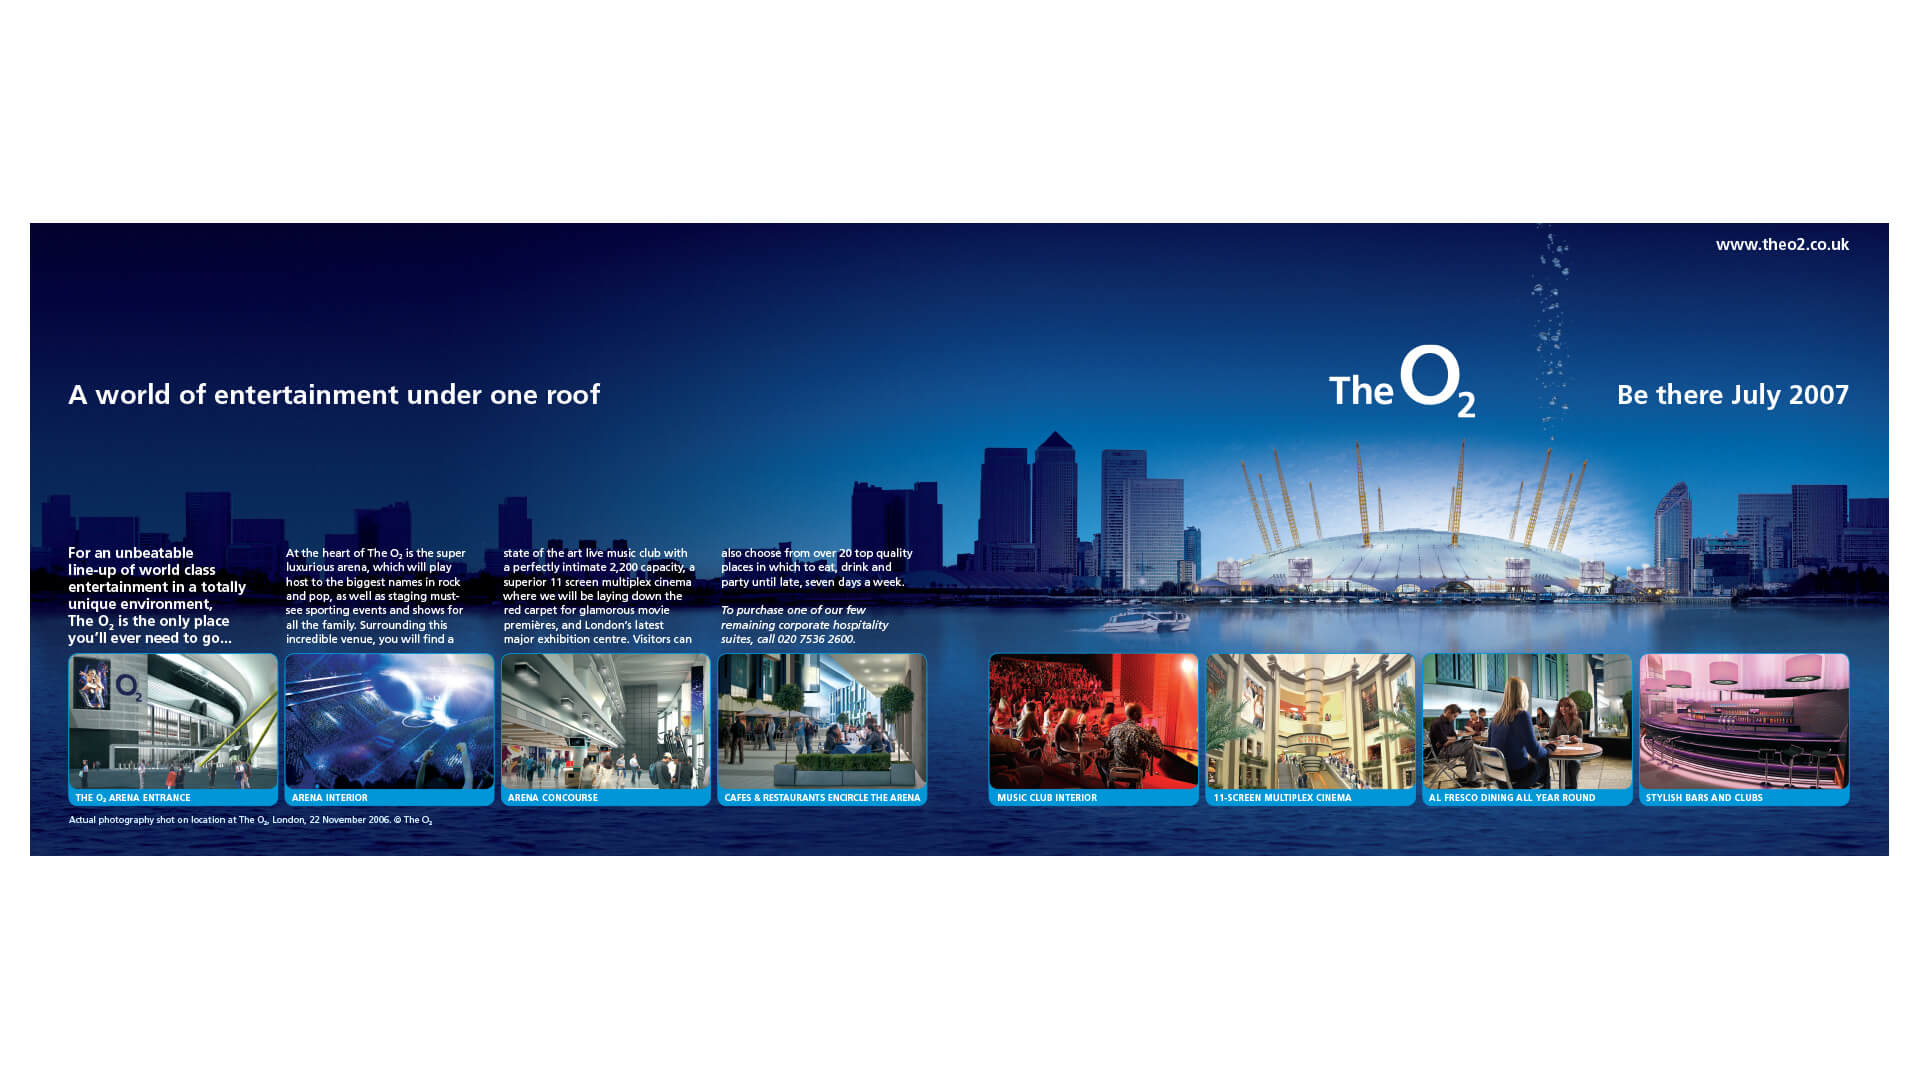 the o2 advertising campaign brand strategy messaging